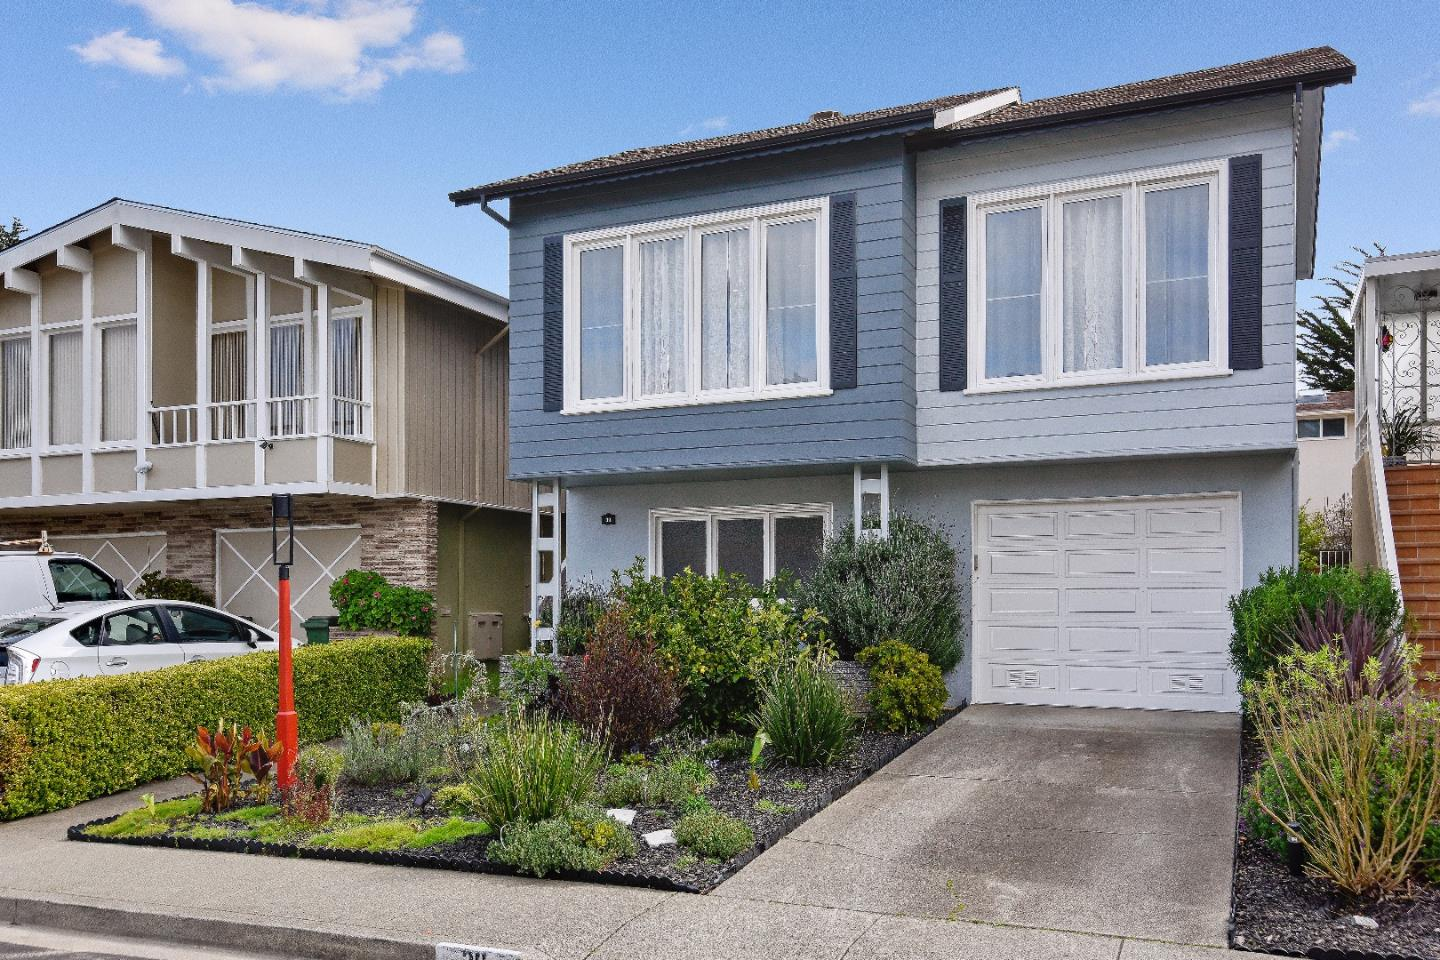 Single Family Home for Sale at 30 Lakeview Drive Daly City, California 94015 United States